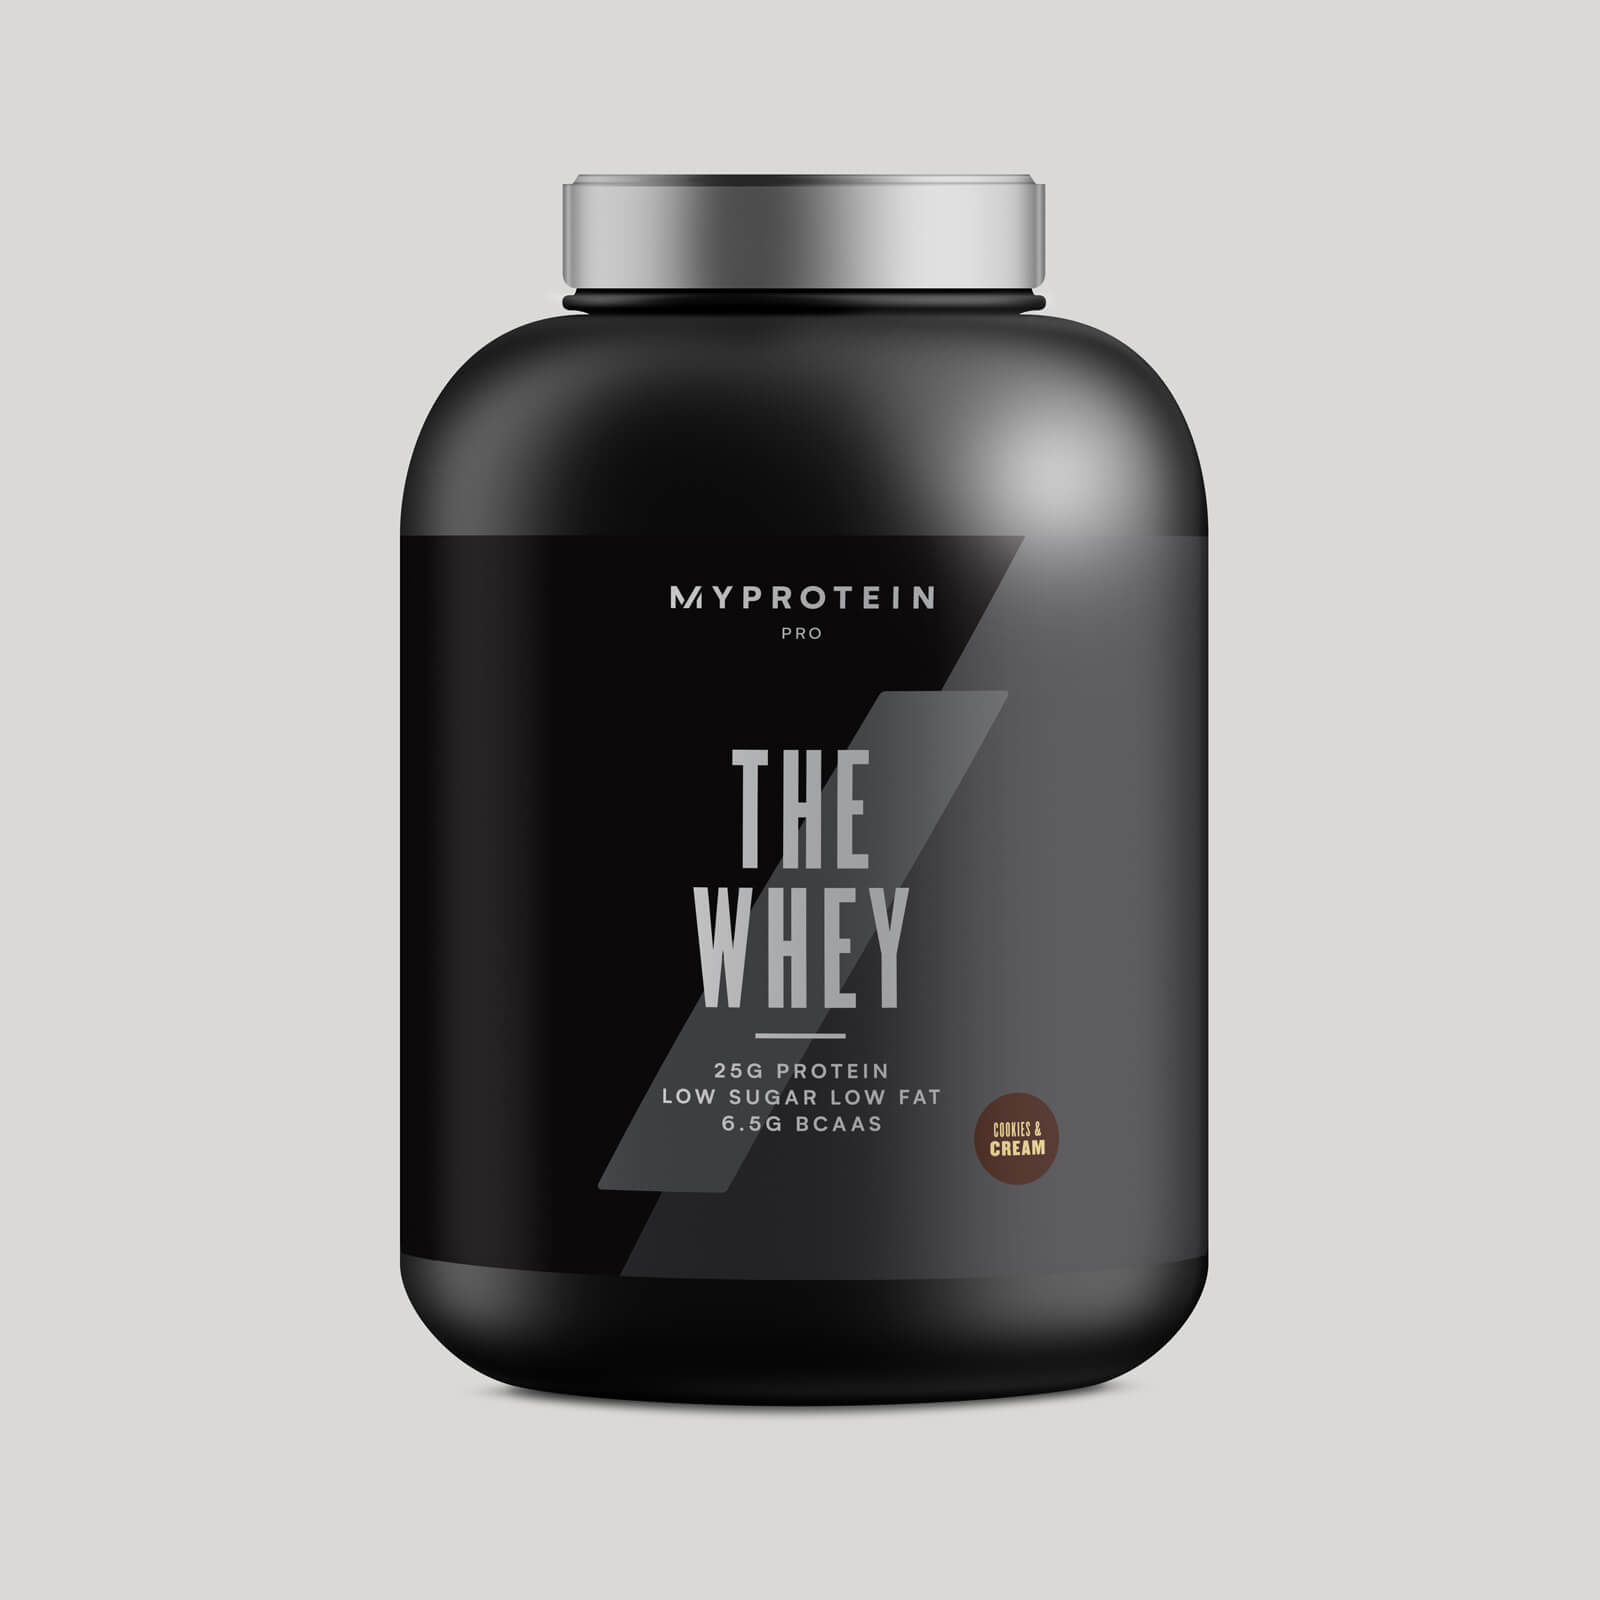 THE Whey™ - 60 Servings - 1.8kg - Cookie & cream